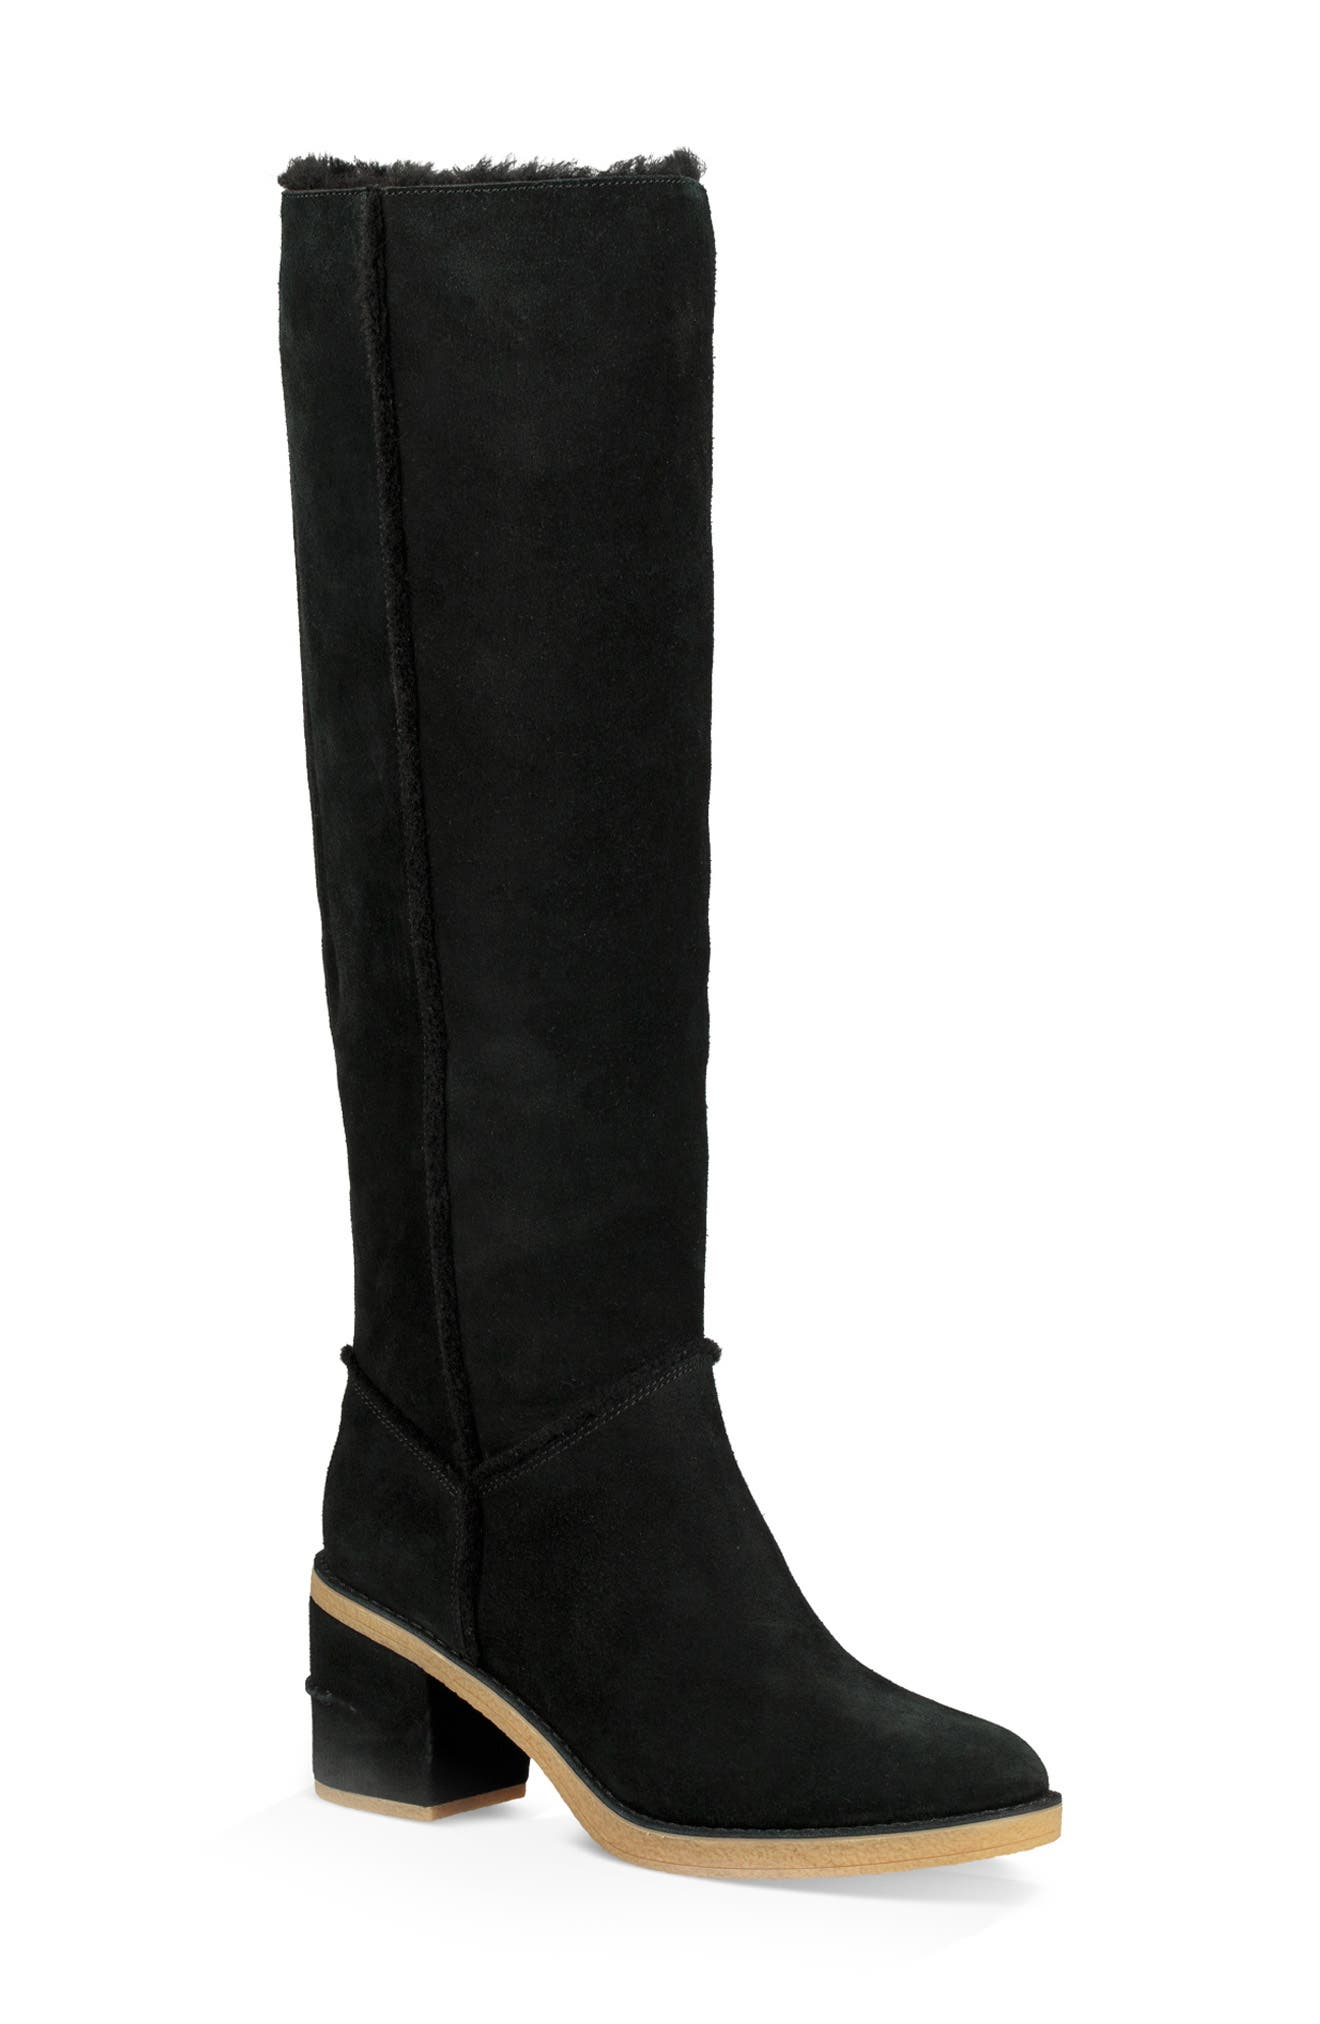 Kasen II Knee High Boot,                             Main thumbnail 1, color,                             001